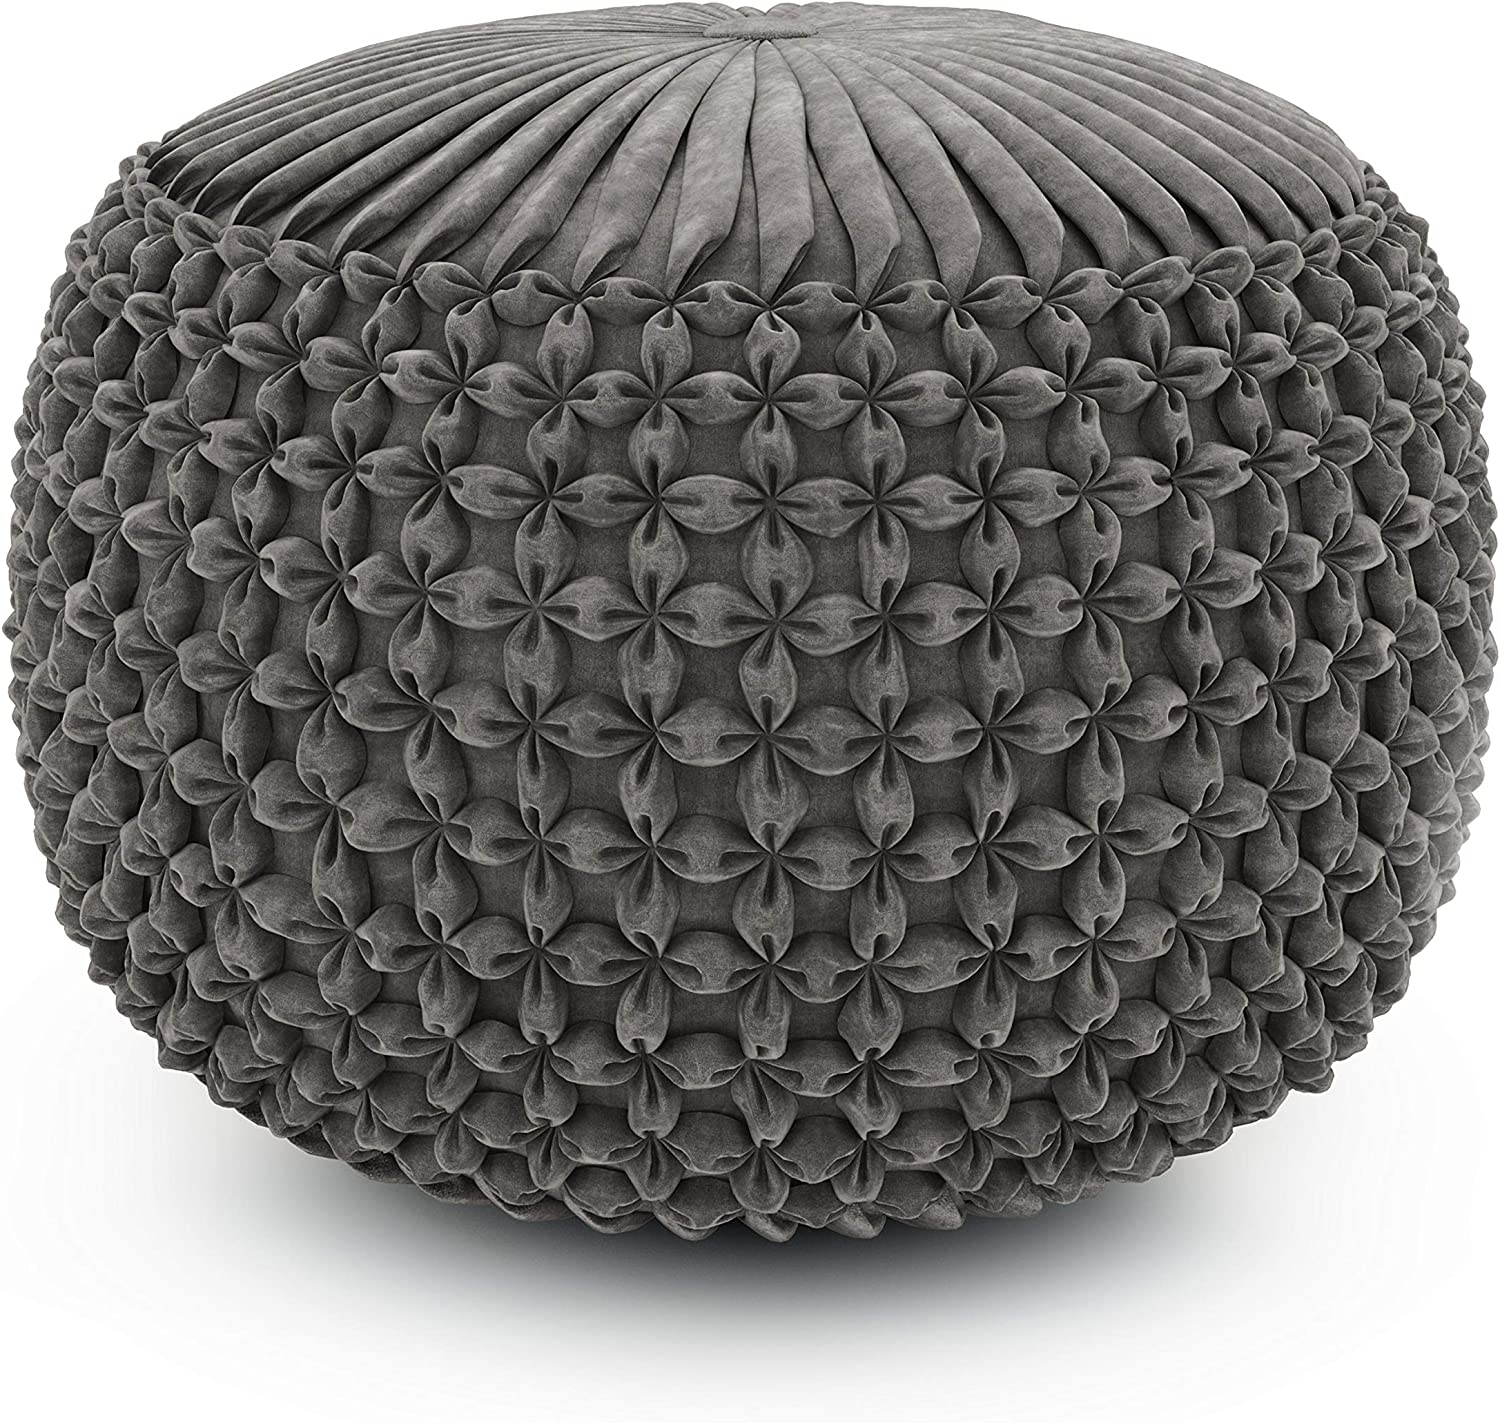 SIMPLIHOME Renee Round Pouf, Footstool, Upholstered in Dove Grey Velvet, for the Living Room, Bedroom and Kids Room, Transitional, Modern